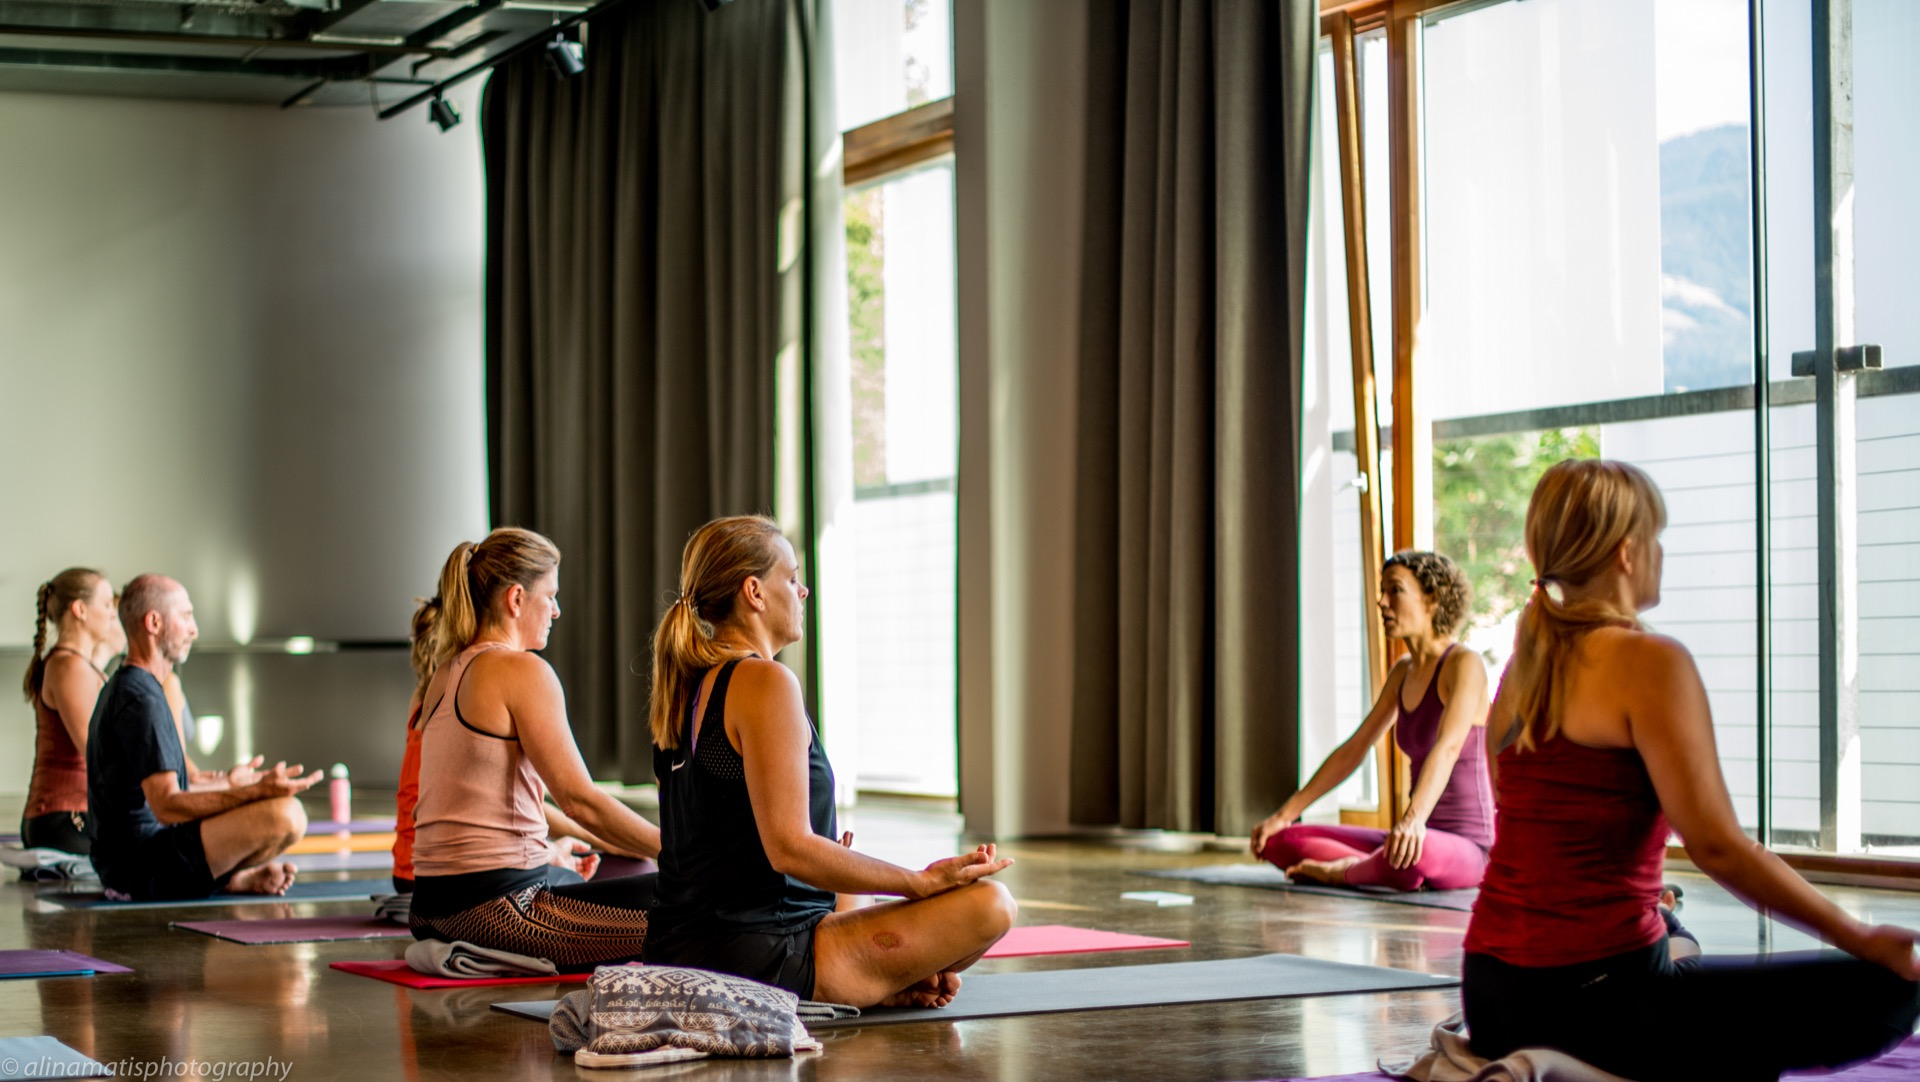 Hie-Kim-Friends-2018-Yoga-Retreat-Alina-Matis-Photography-180 - Hie Kim Yoga - Yoga Retreat - Yoga Workshops und Reisen